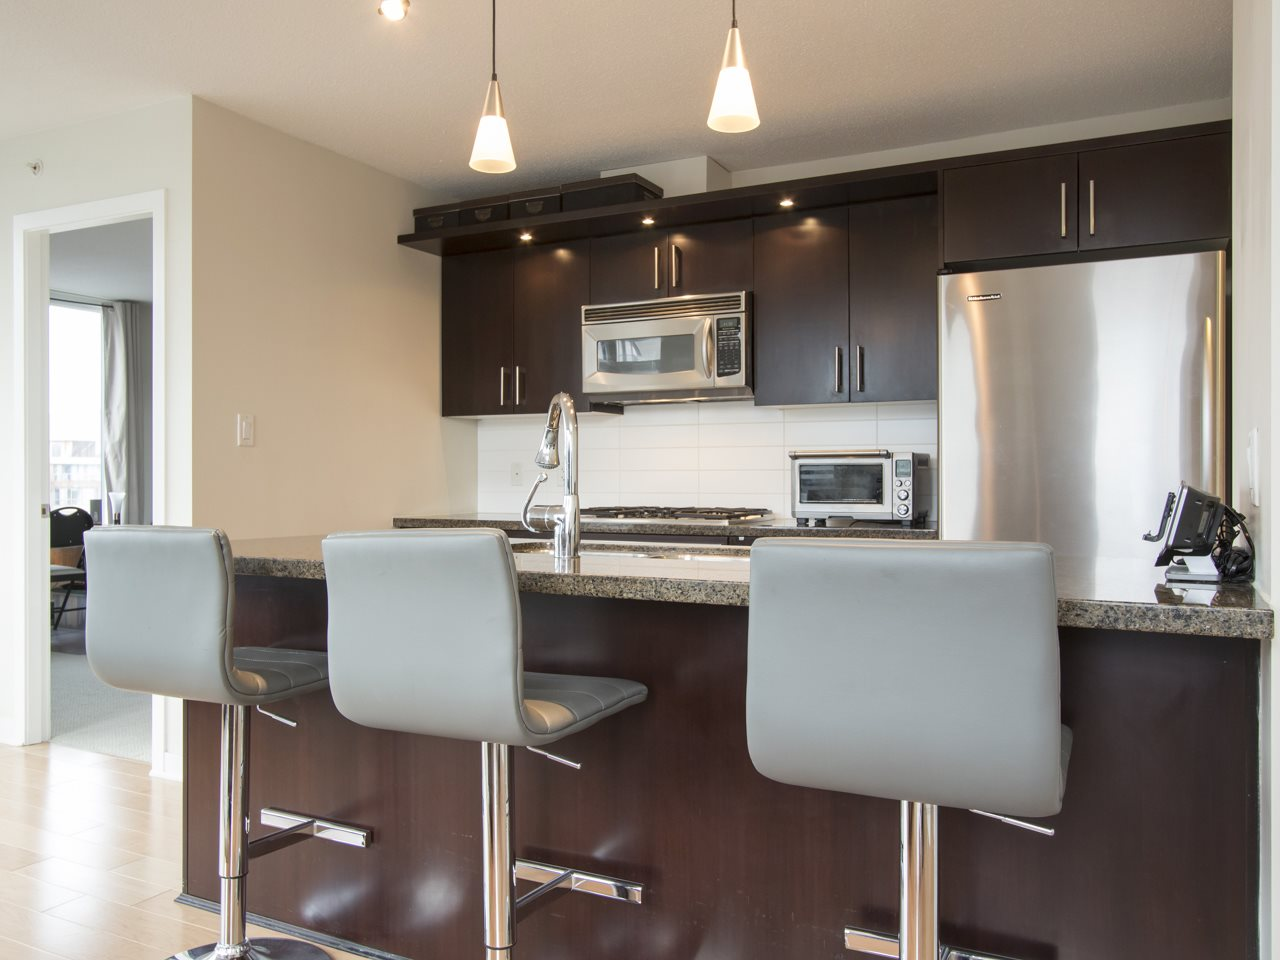 Photo 8: 1002 1650 W 7TH AVENUE in Vancouver: Fairview VW Condo for sale (Vancouver West)  : MLS® # R2022214